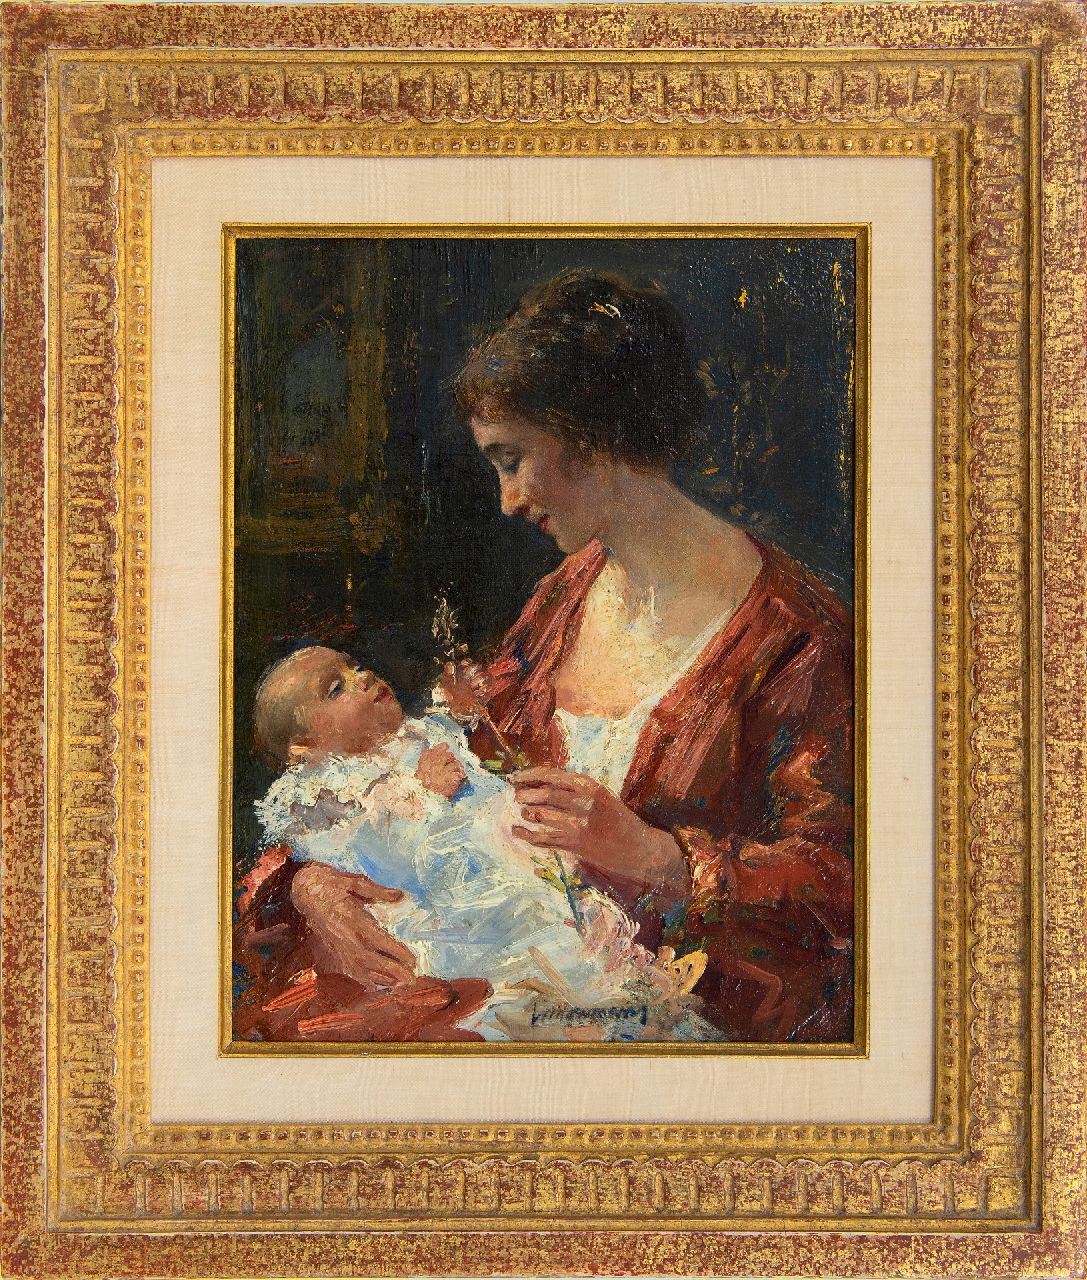 Maris S.W.  | Simon Willem Maris | Paintings offered for sale | Mother and child, oil on canvas 29.0 x 22.5 cm, signed l.c.